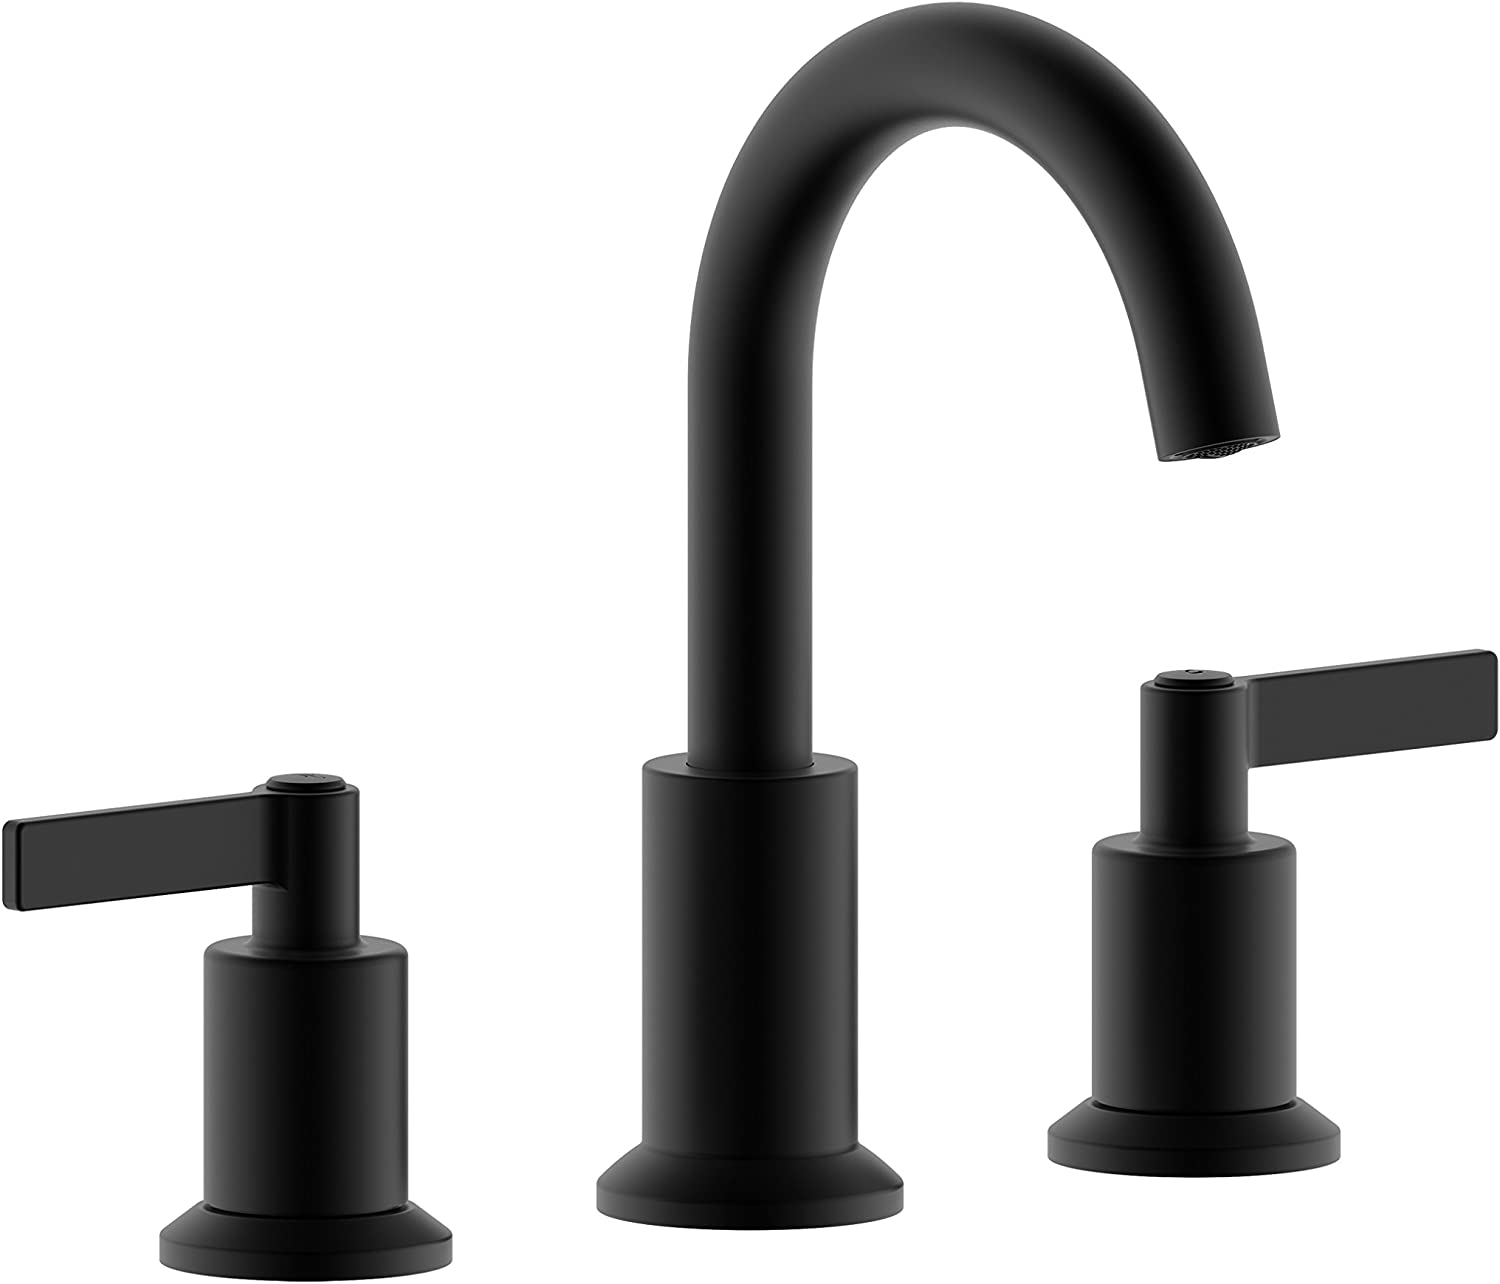 Shop Two Handle Widespread Bathroom Sink Faucet from Amazon on Openhaus